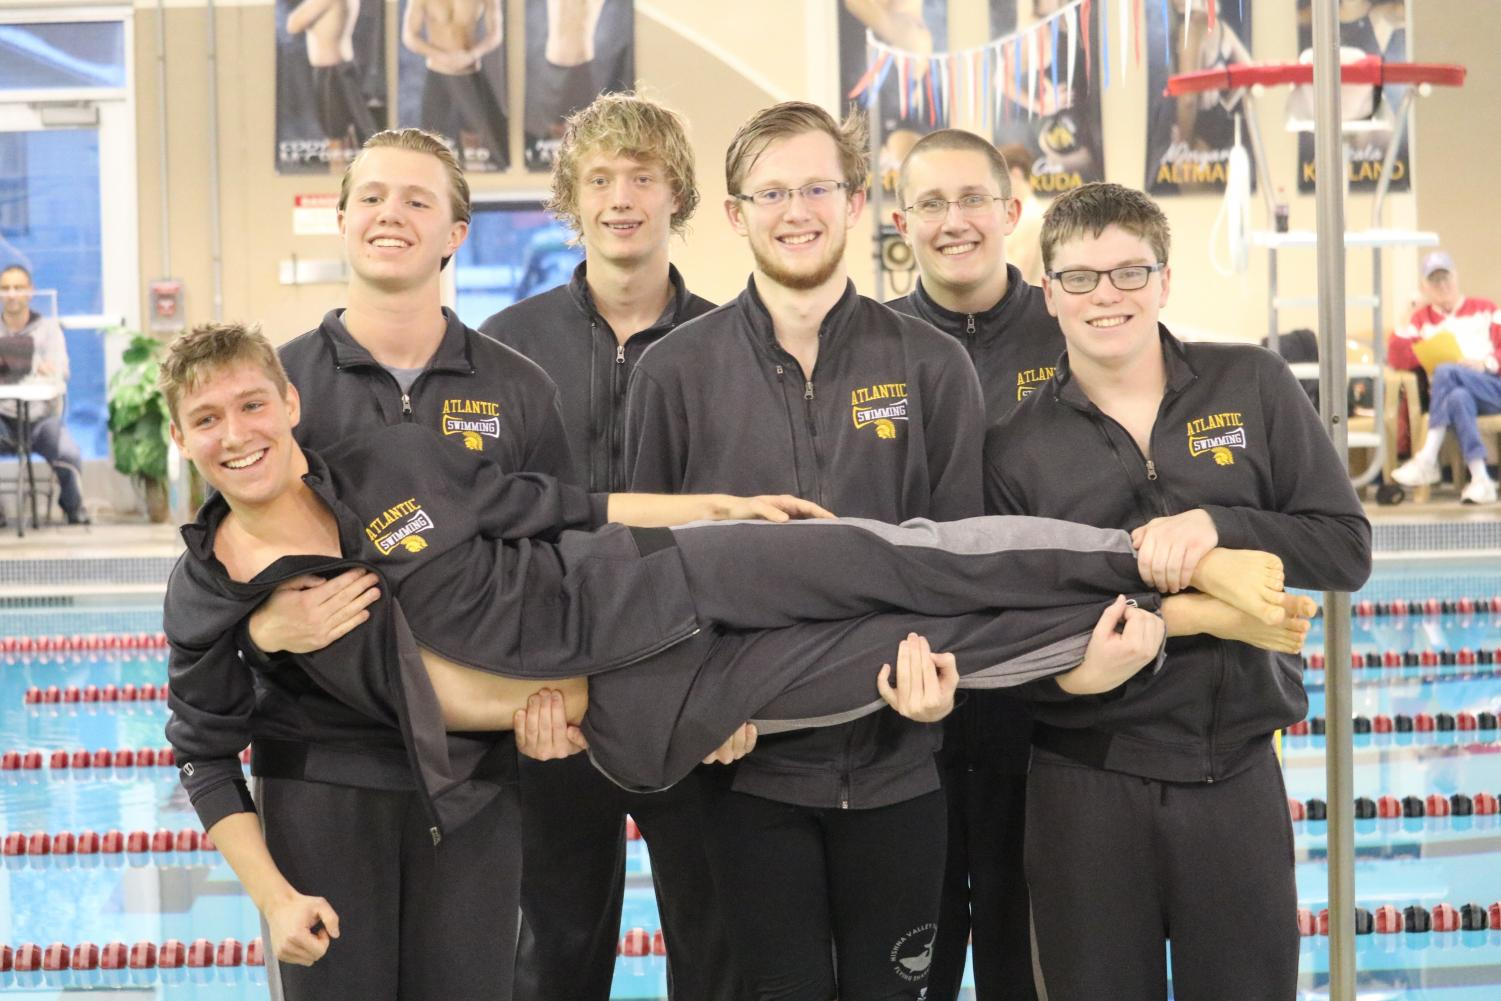 Members of the boys swim team have some fun at their home meet. The meet was held at the YMCA.